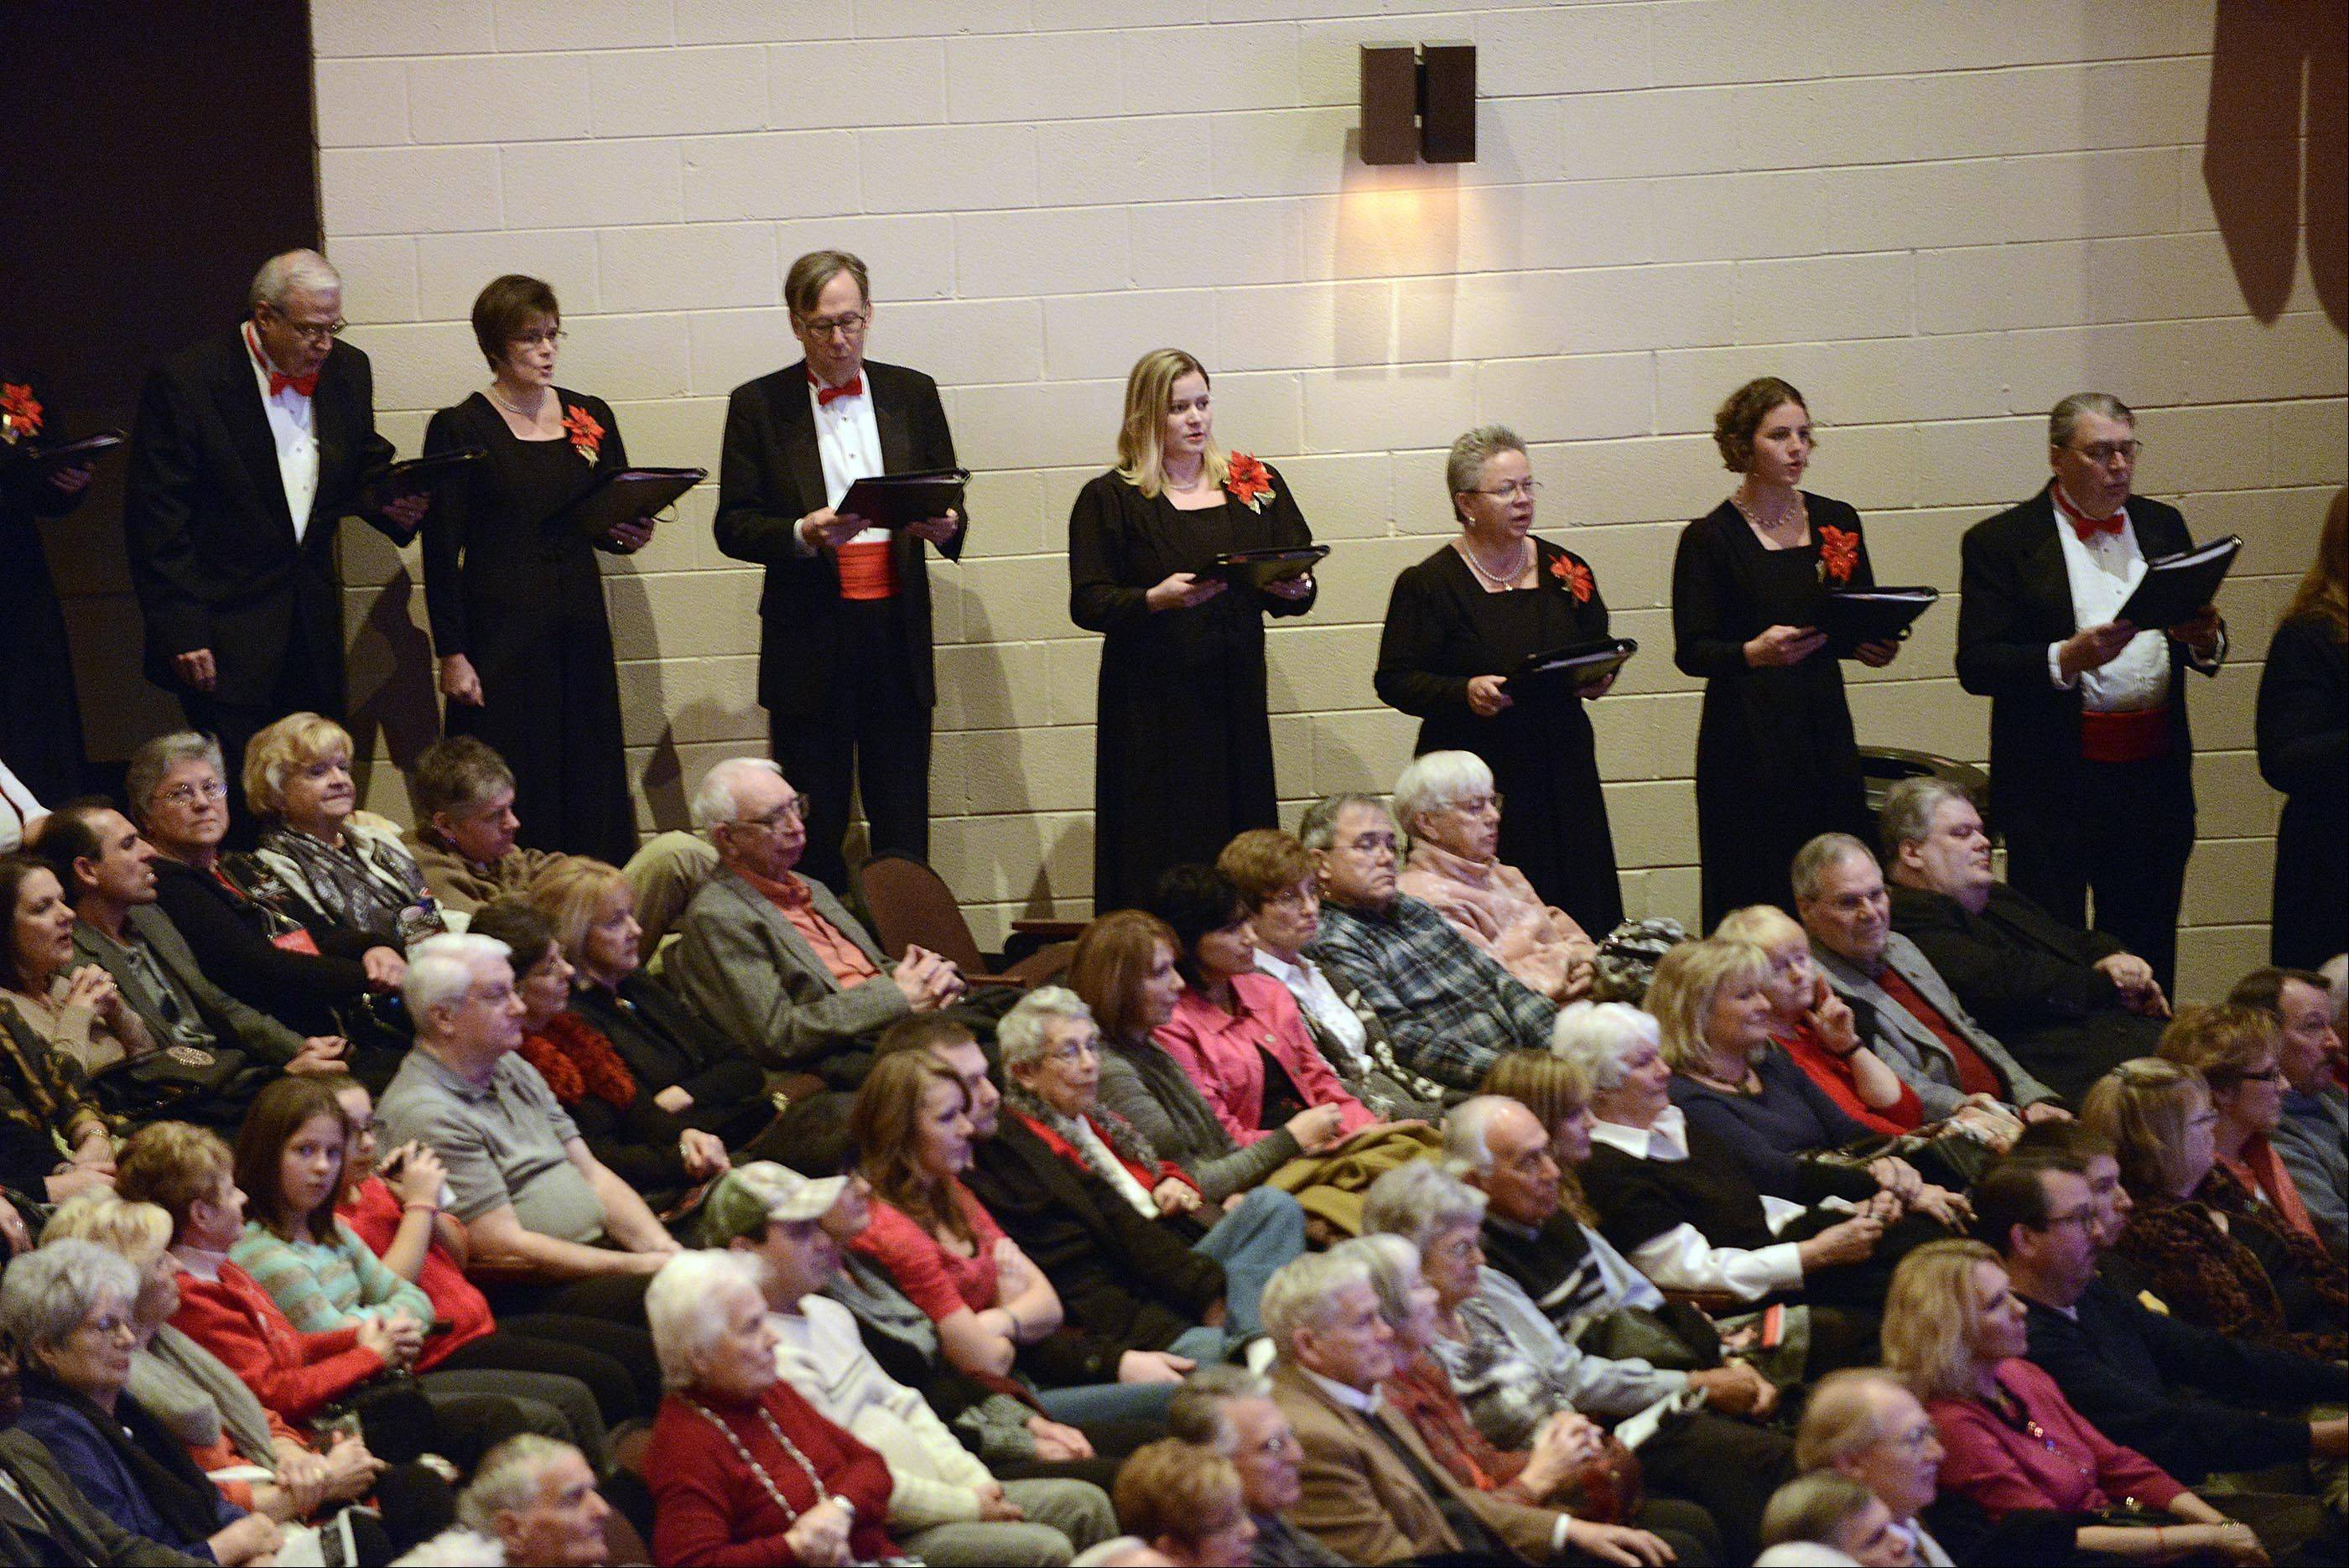 The Elgin Choral Union surrounded the audience Sunday at the start of the Elgin Symphony Orchestra�s Magical Holiday Concert at the Hemmens Cultural Center in Elgin. The concert also featured the Elgin Children�s Chorus, Midwest Dance Collective and soprano Elizabeth Norman.